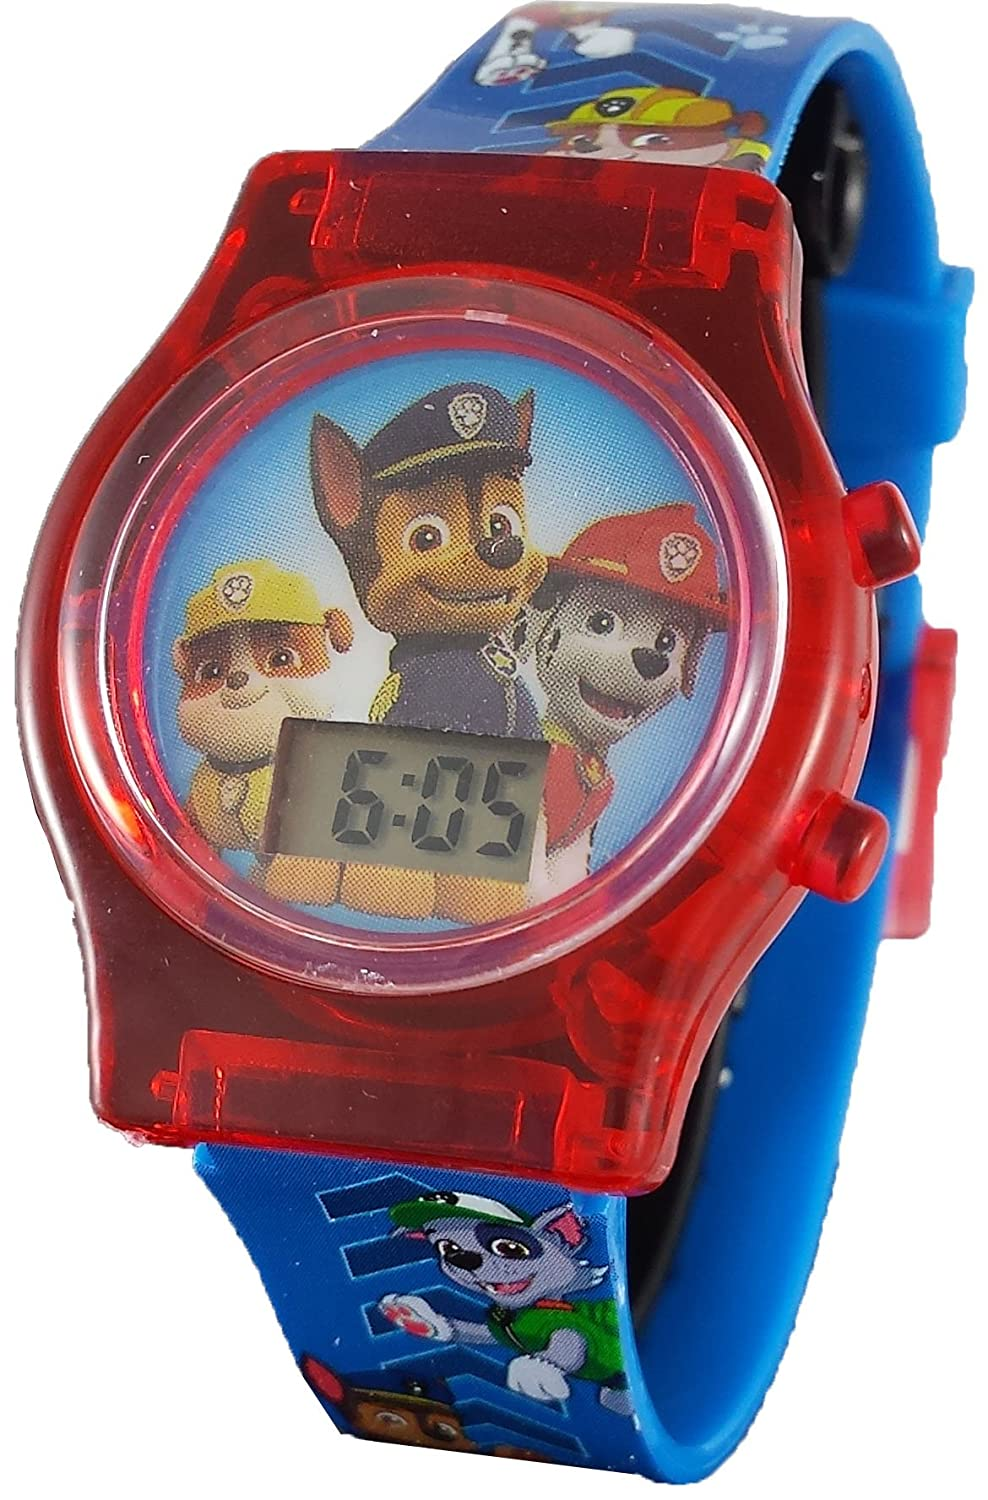 Amazon.com: Paw Patrol Little Kids Digital Watch with Light Up Feature PAW4068: Watches